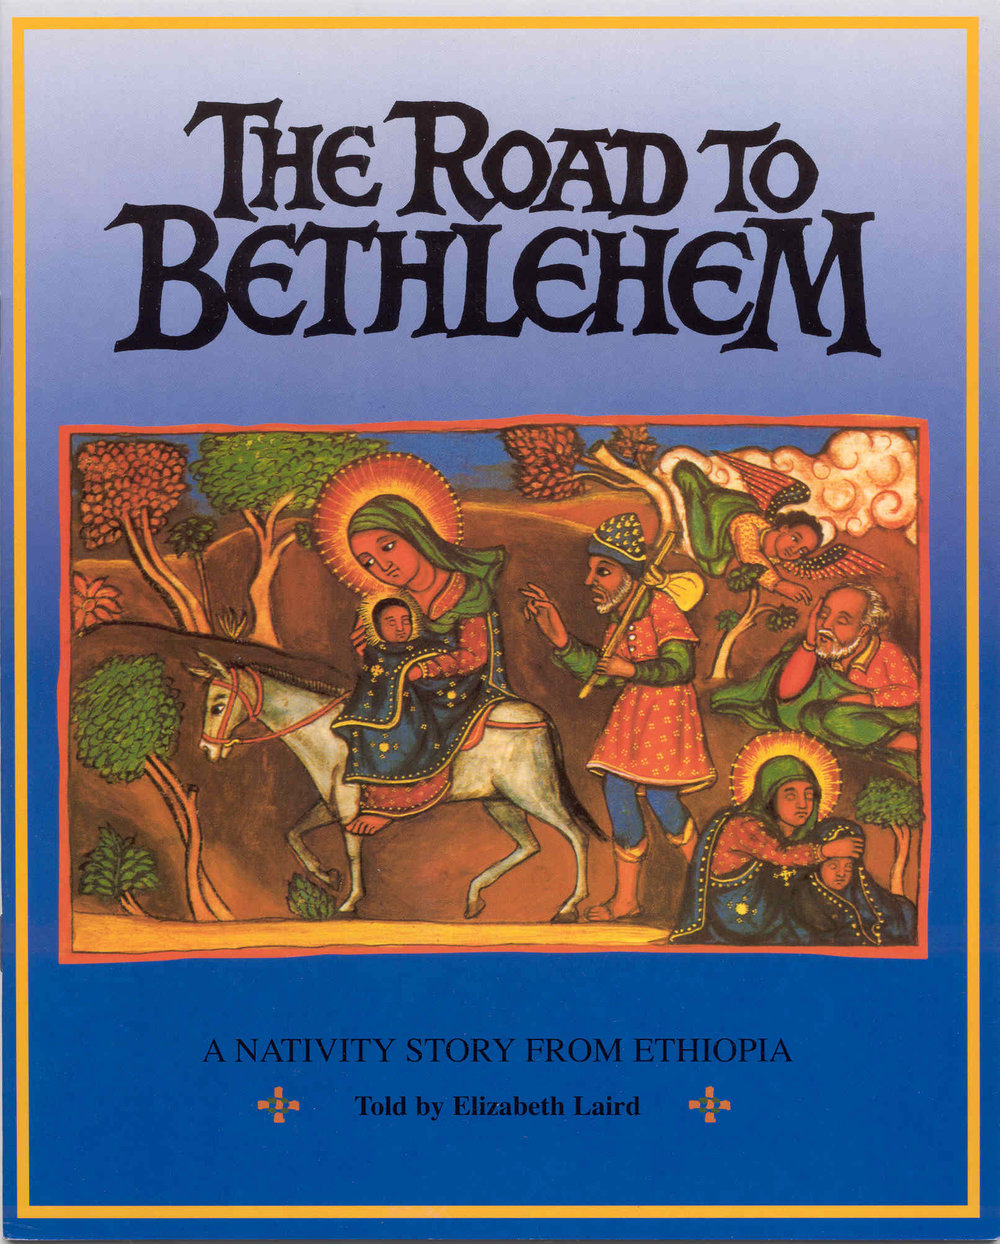 The Road to Bethlehem.jpg